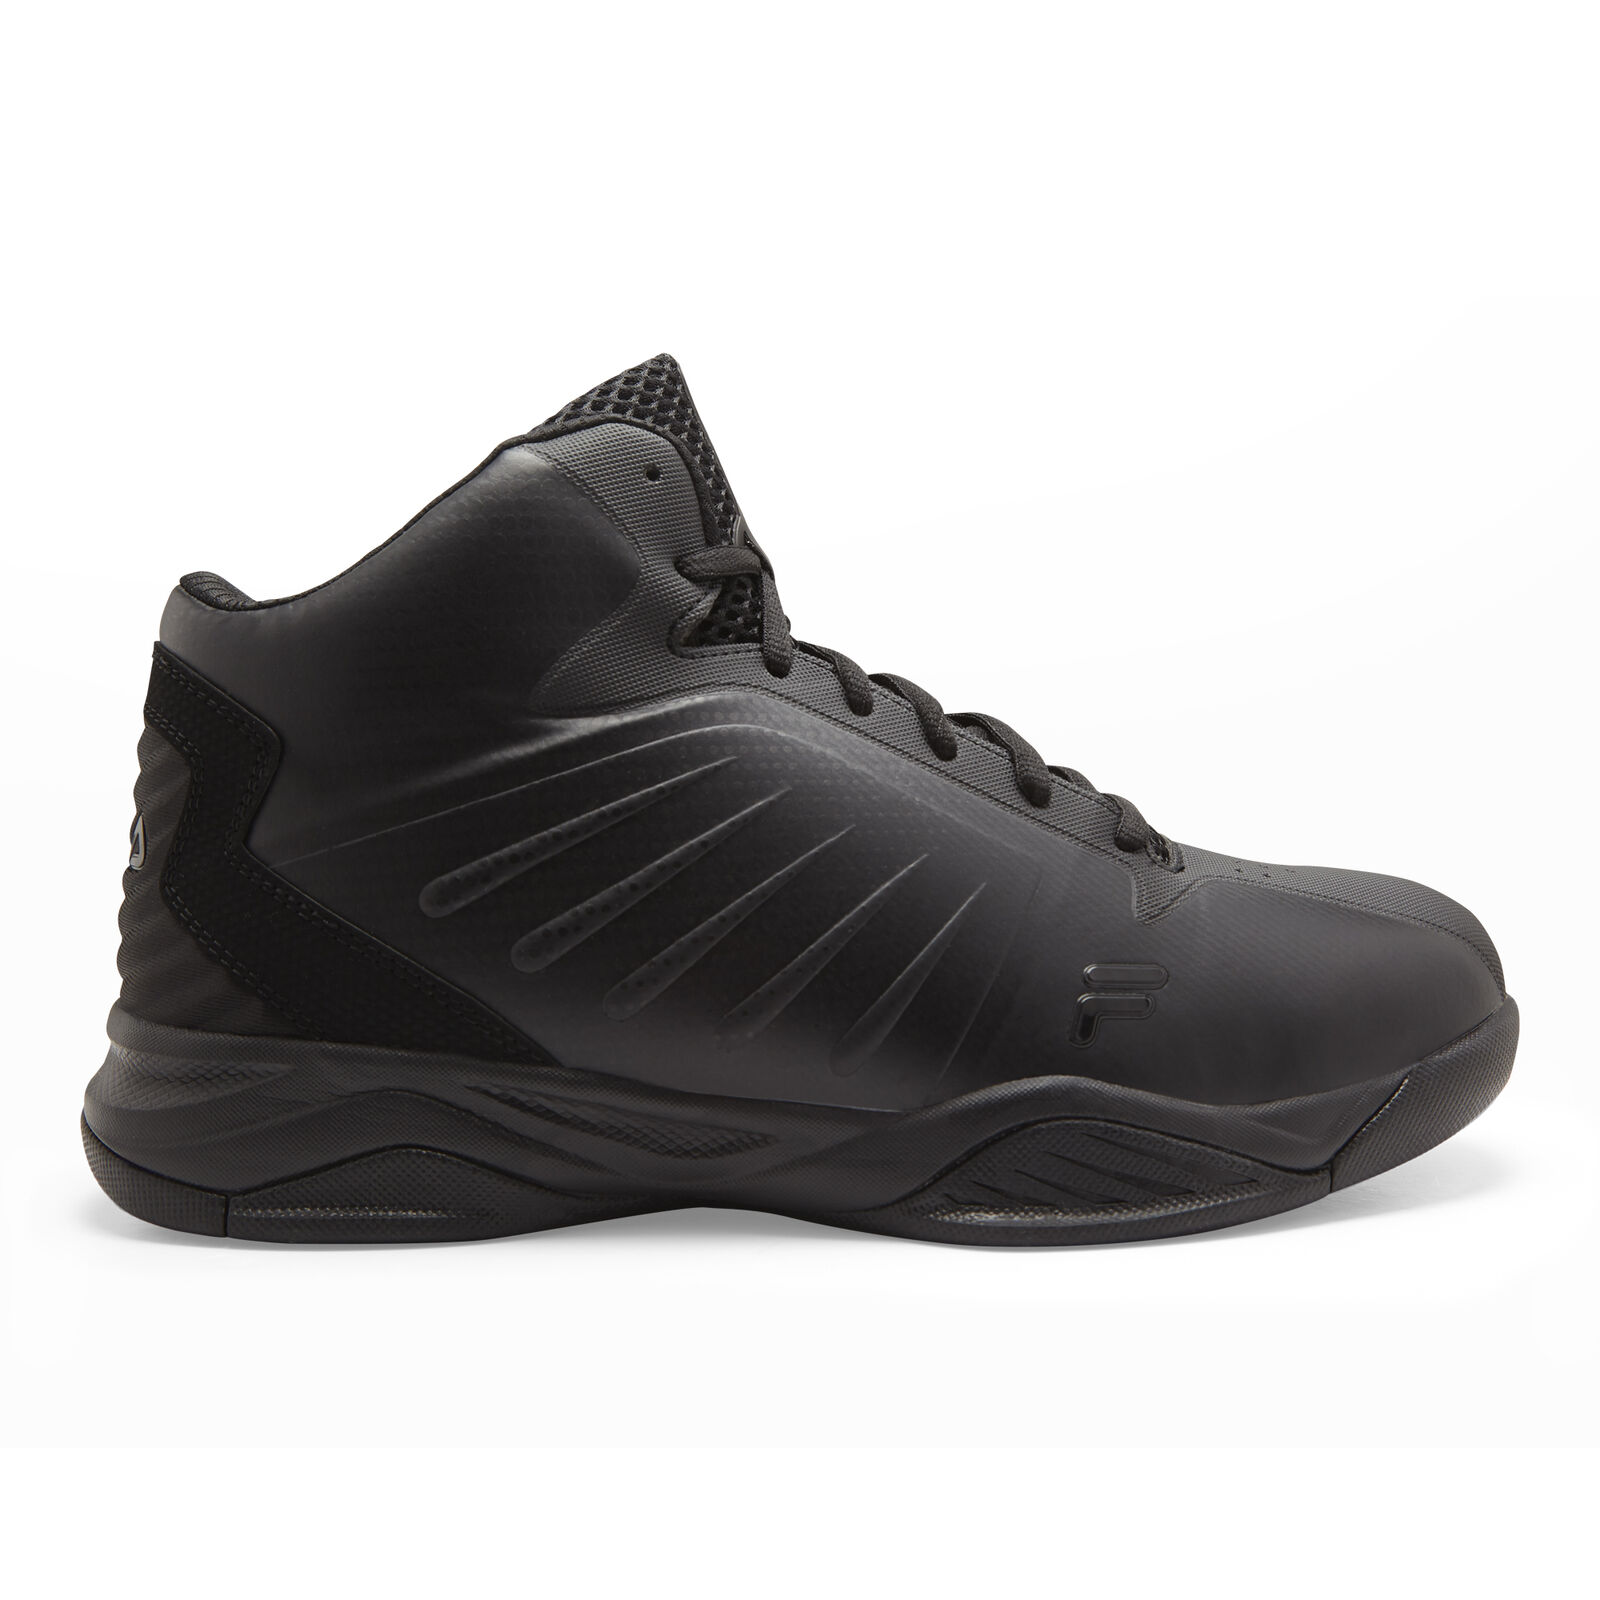 Fila Men's Entrapment 6 Basketball shoes